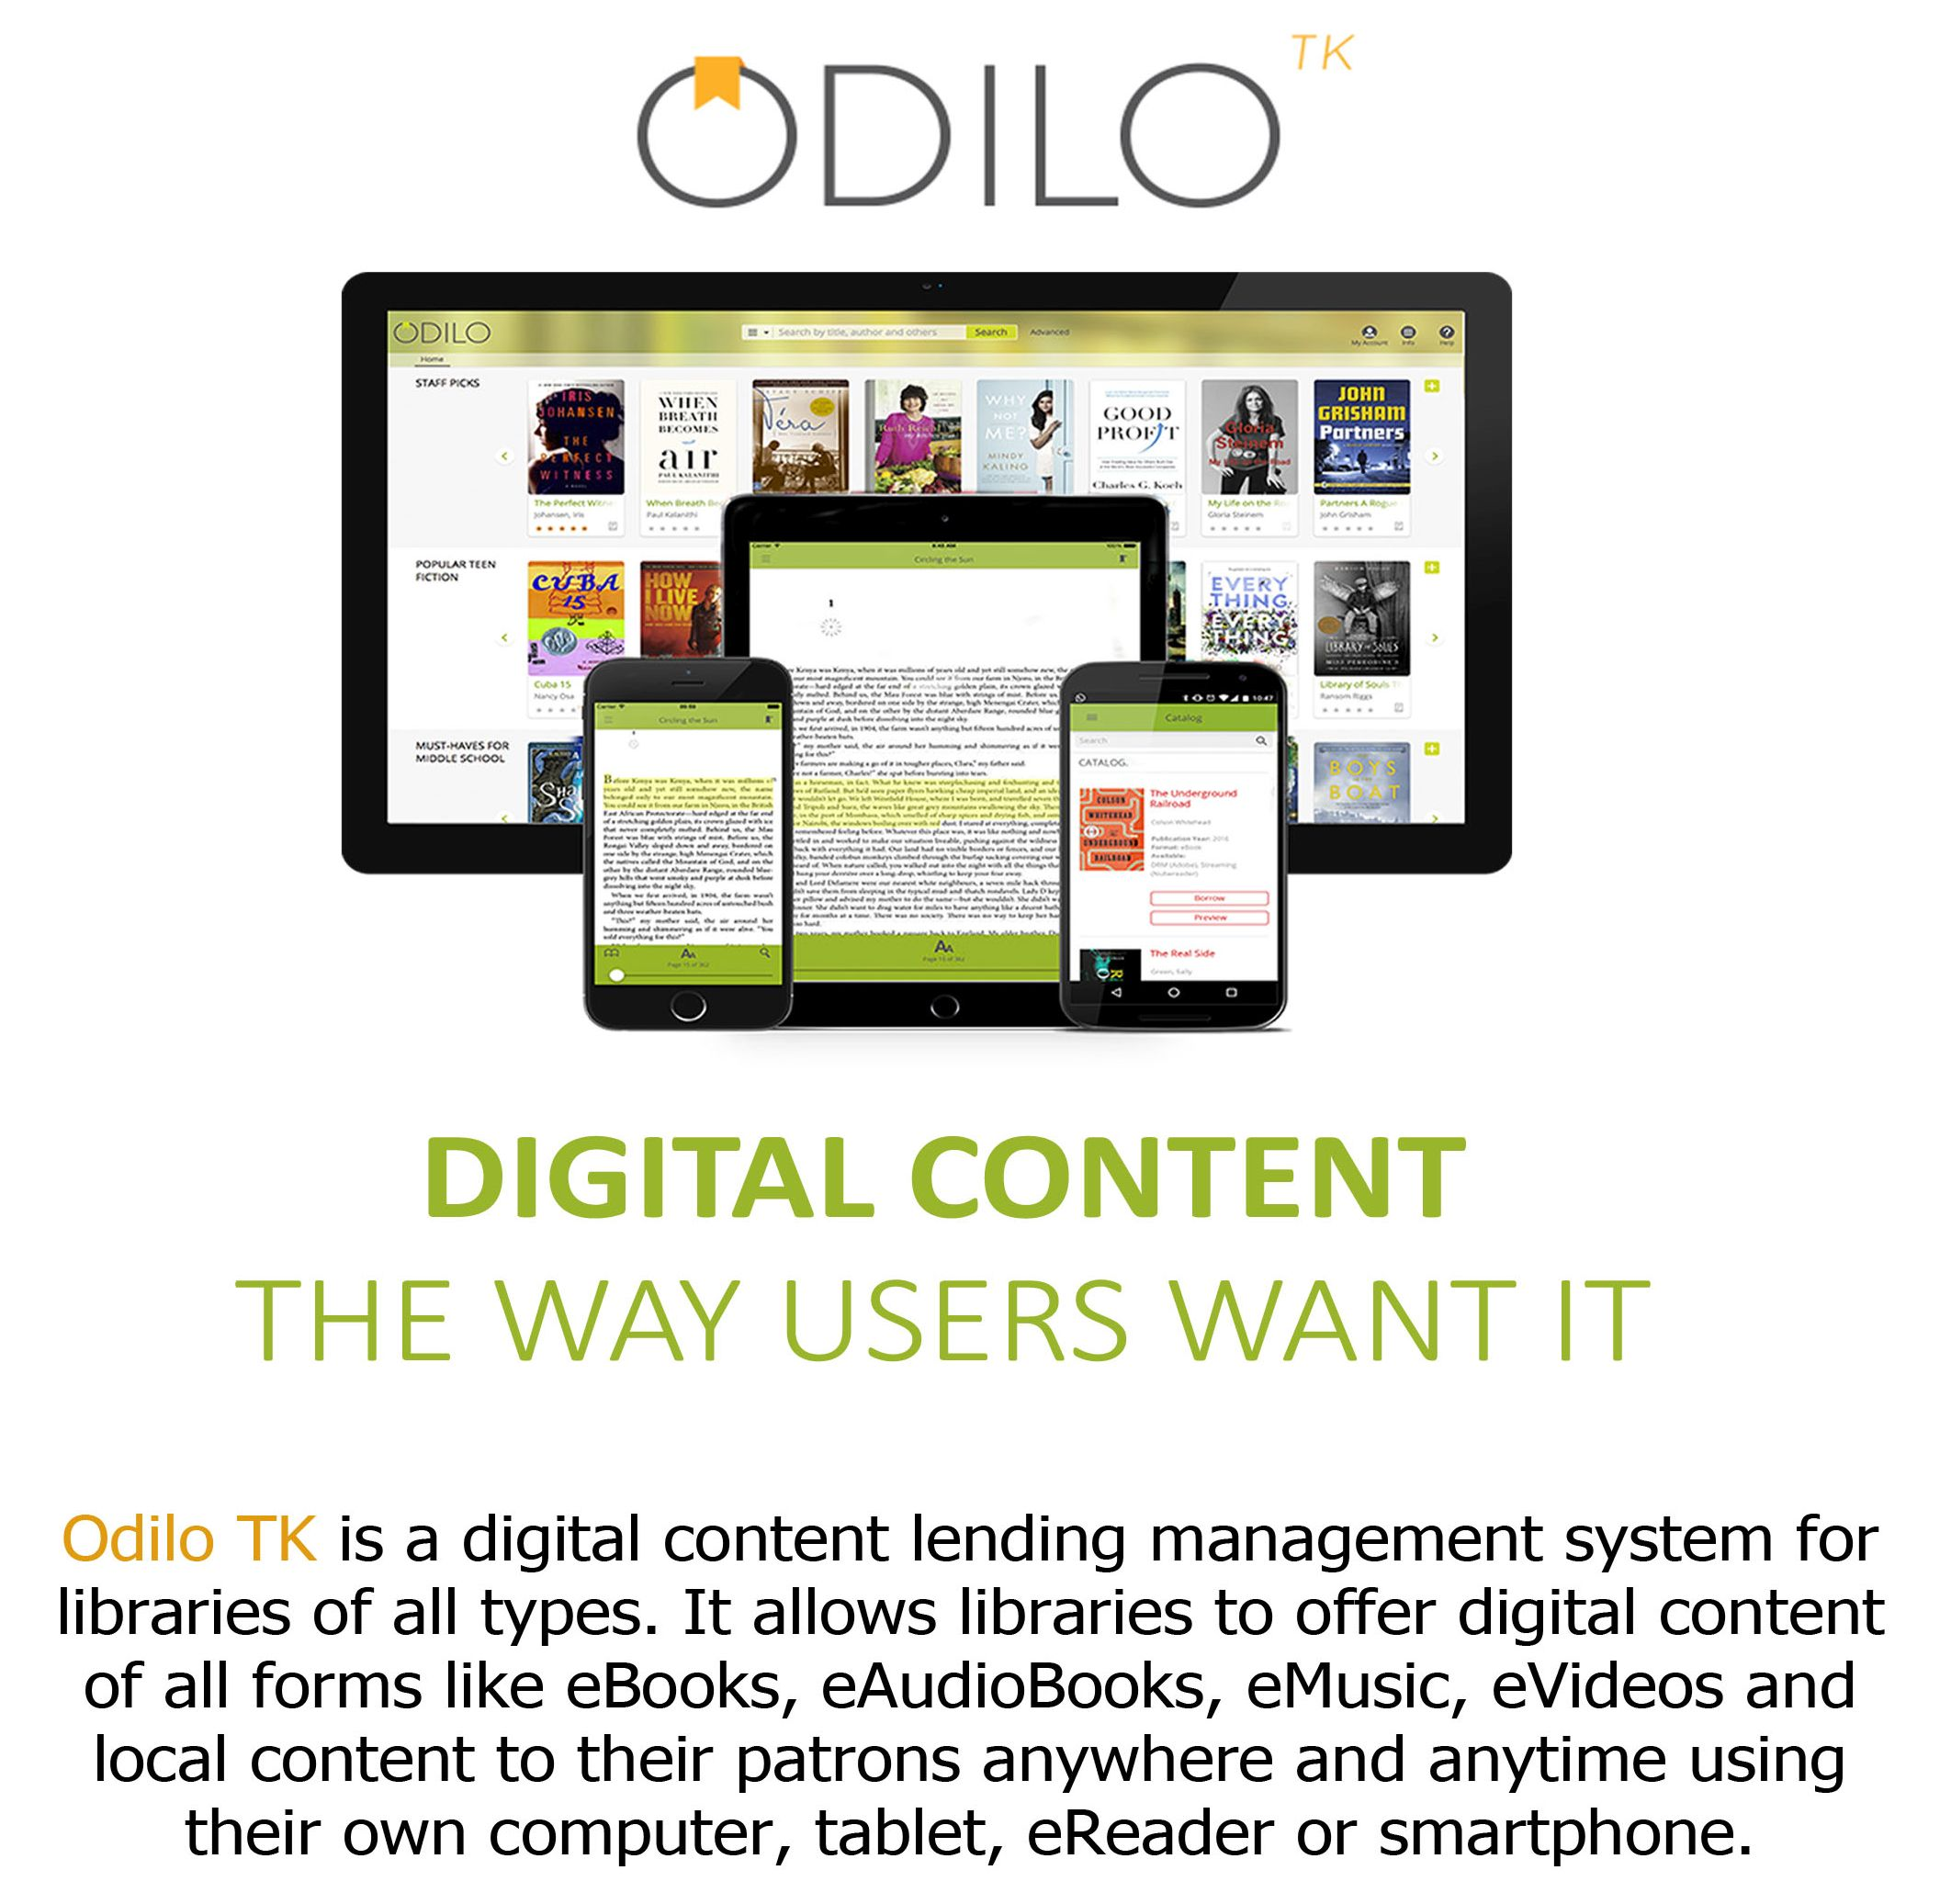 Odilo digital content circulation and lending system